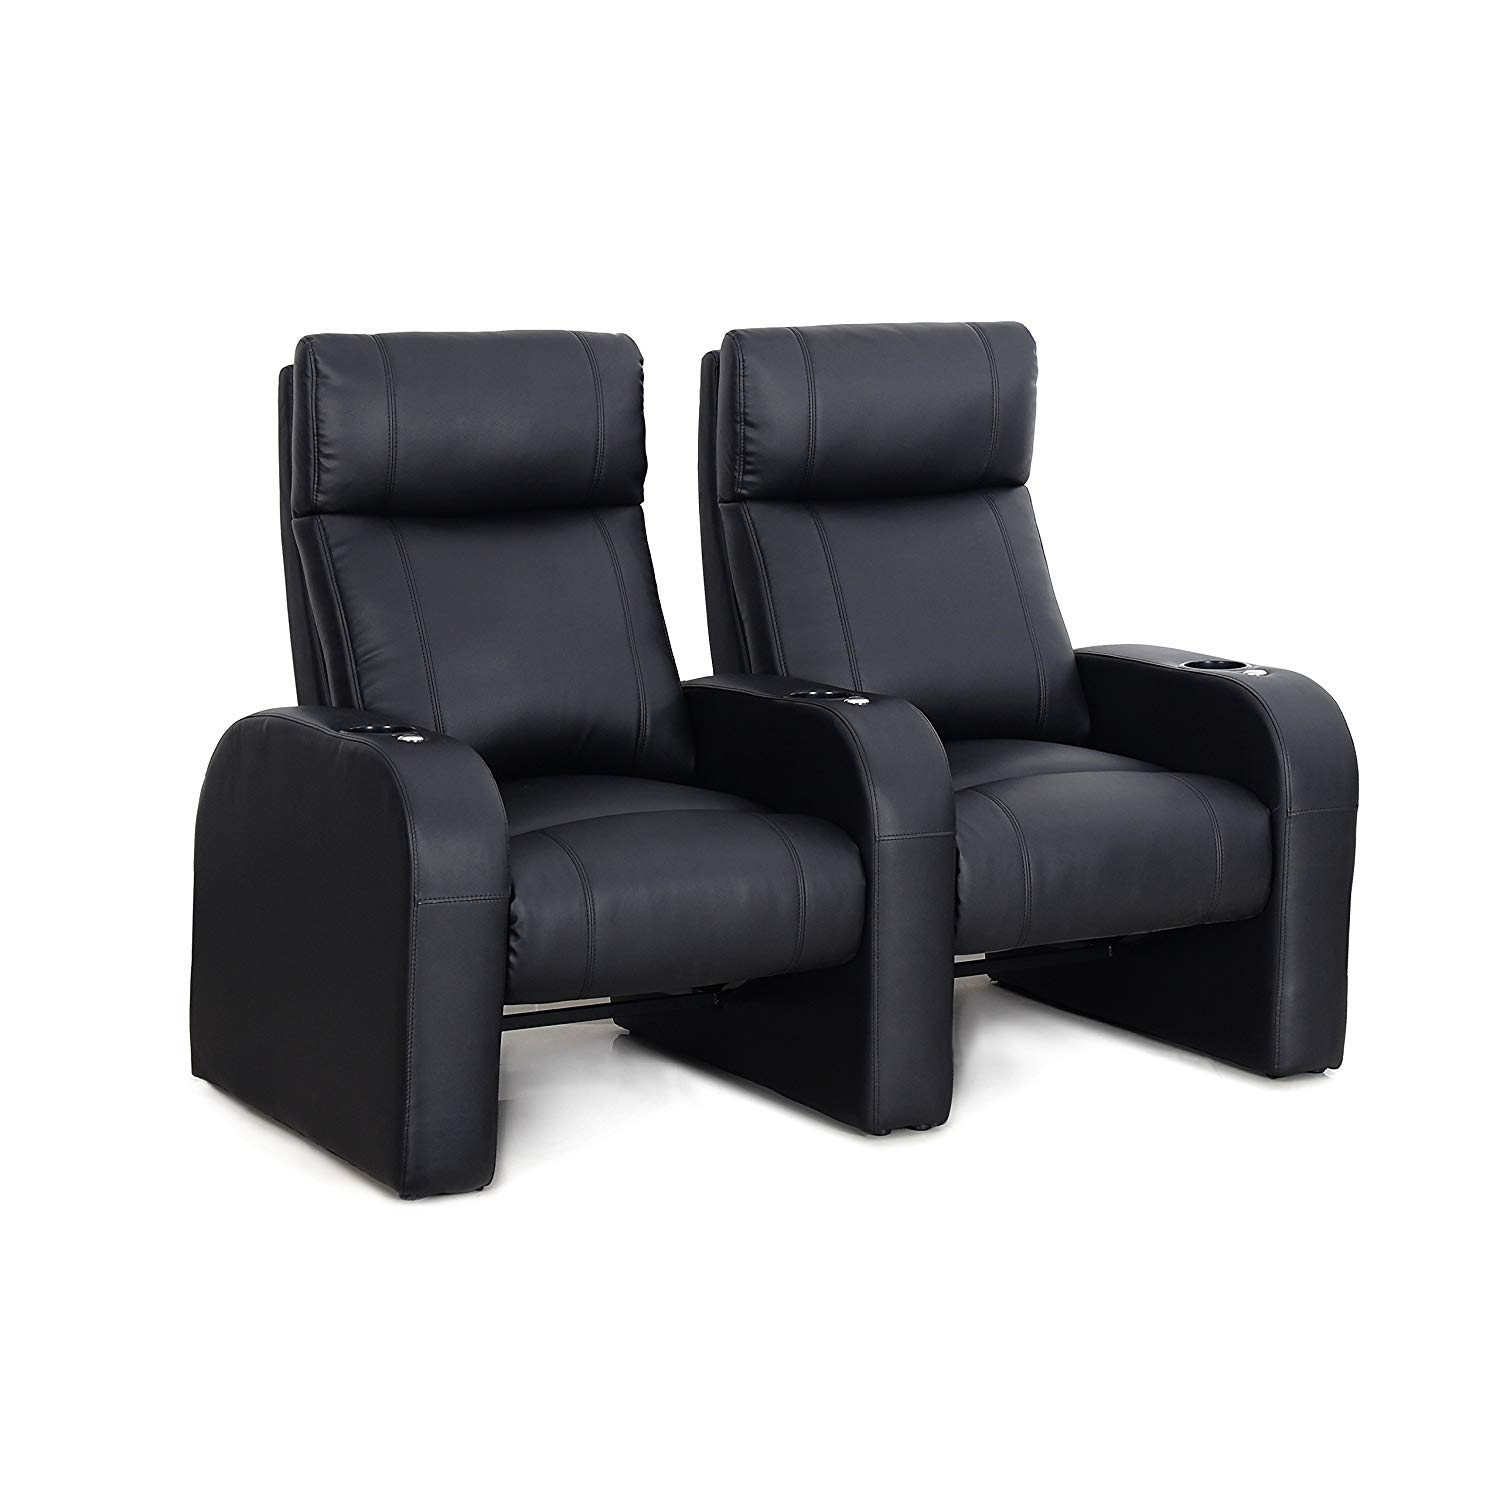 Octane Pulse ZR450 Black Bonded Leather Recliner Home Theater Seating Set (Row of 2)